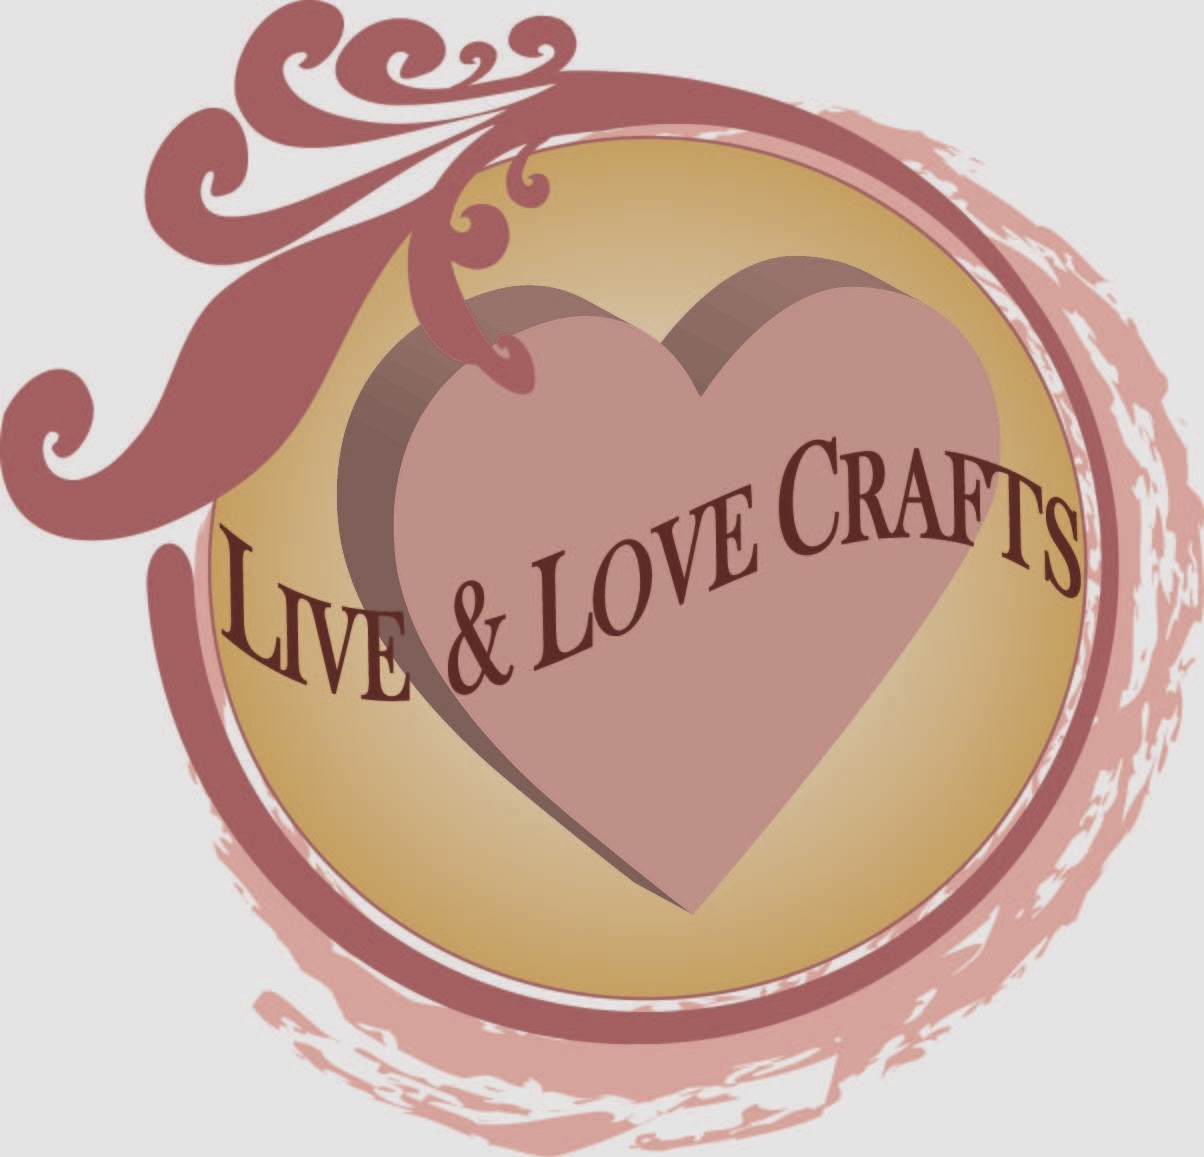 www.liveandlovecrafts.com